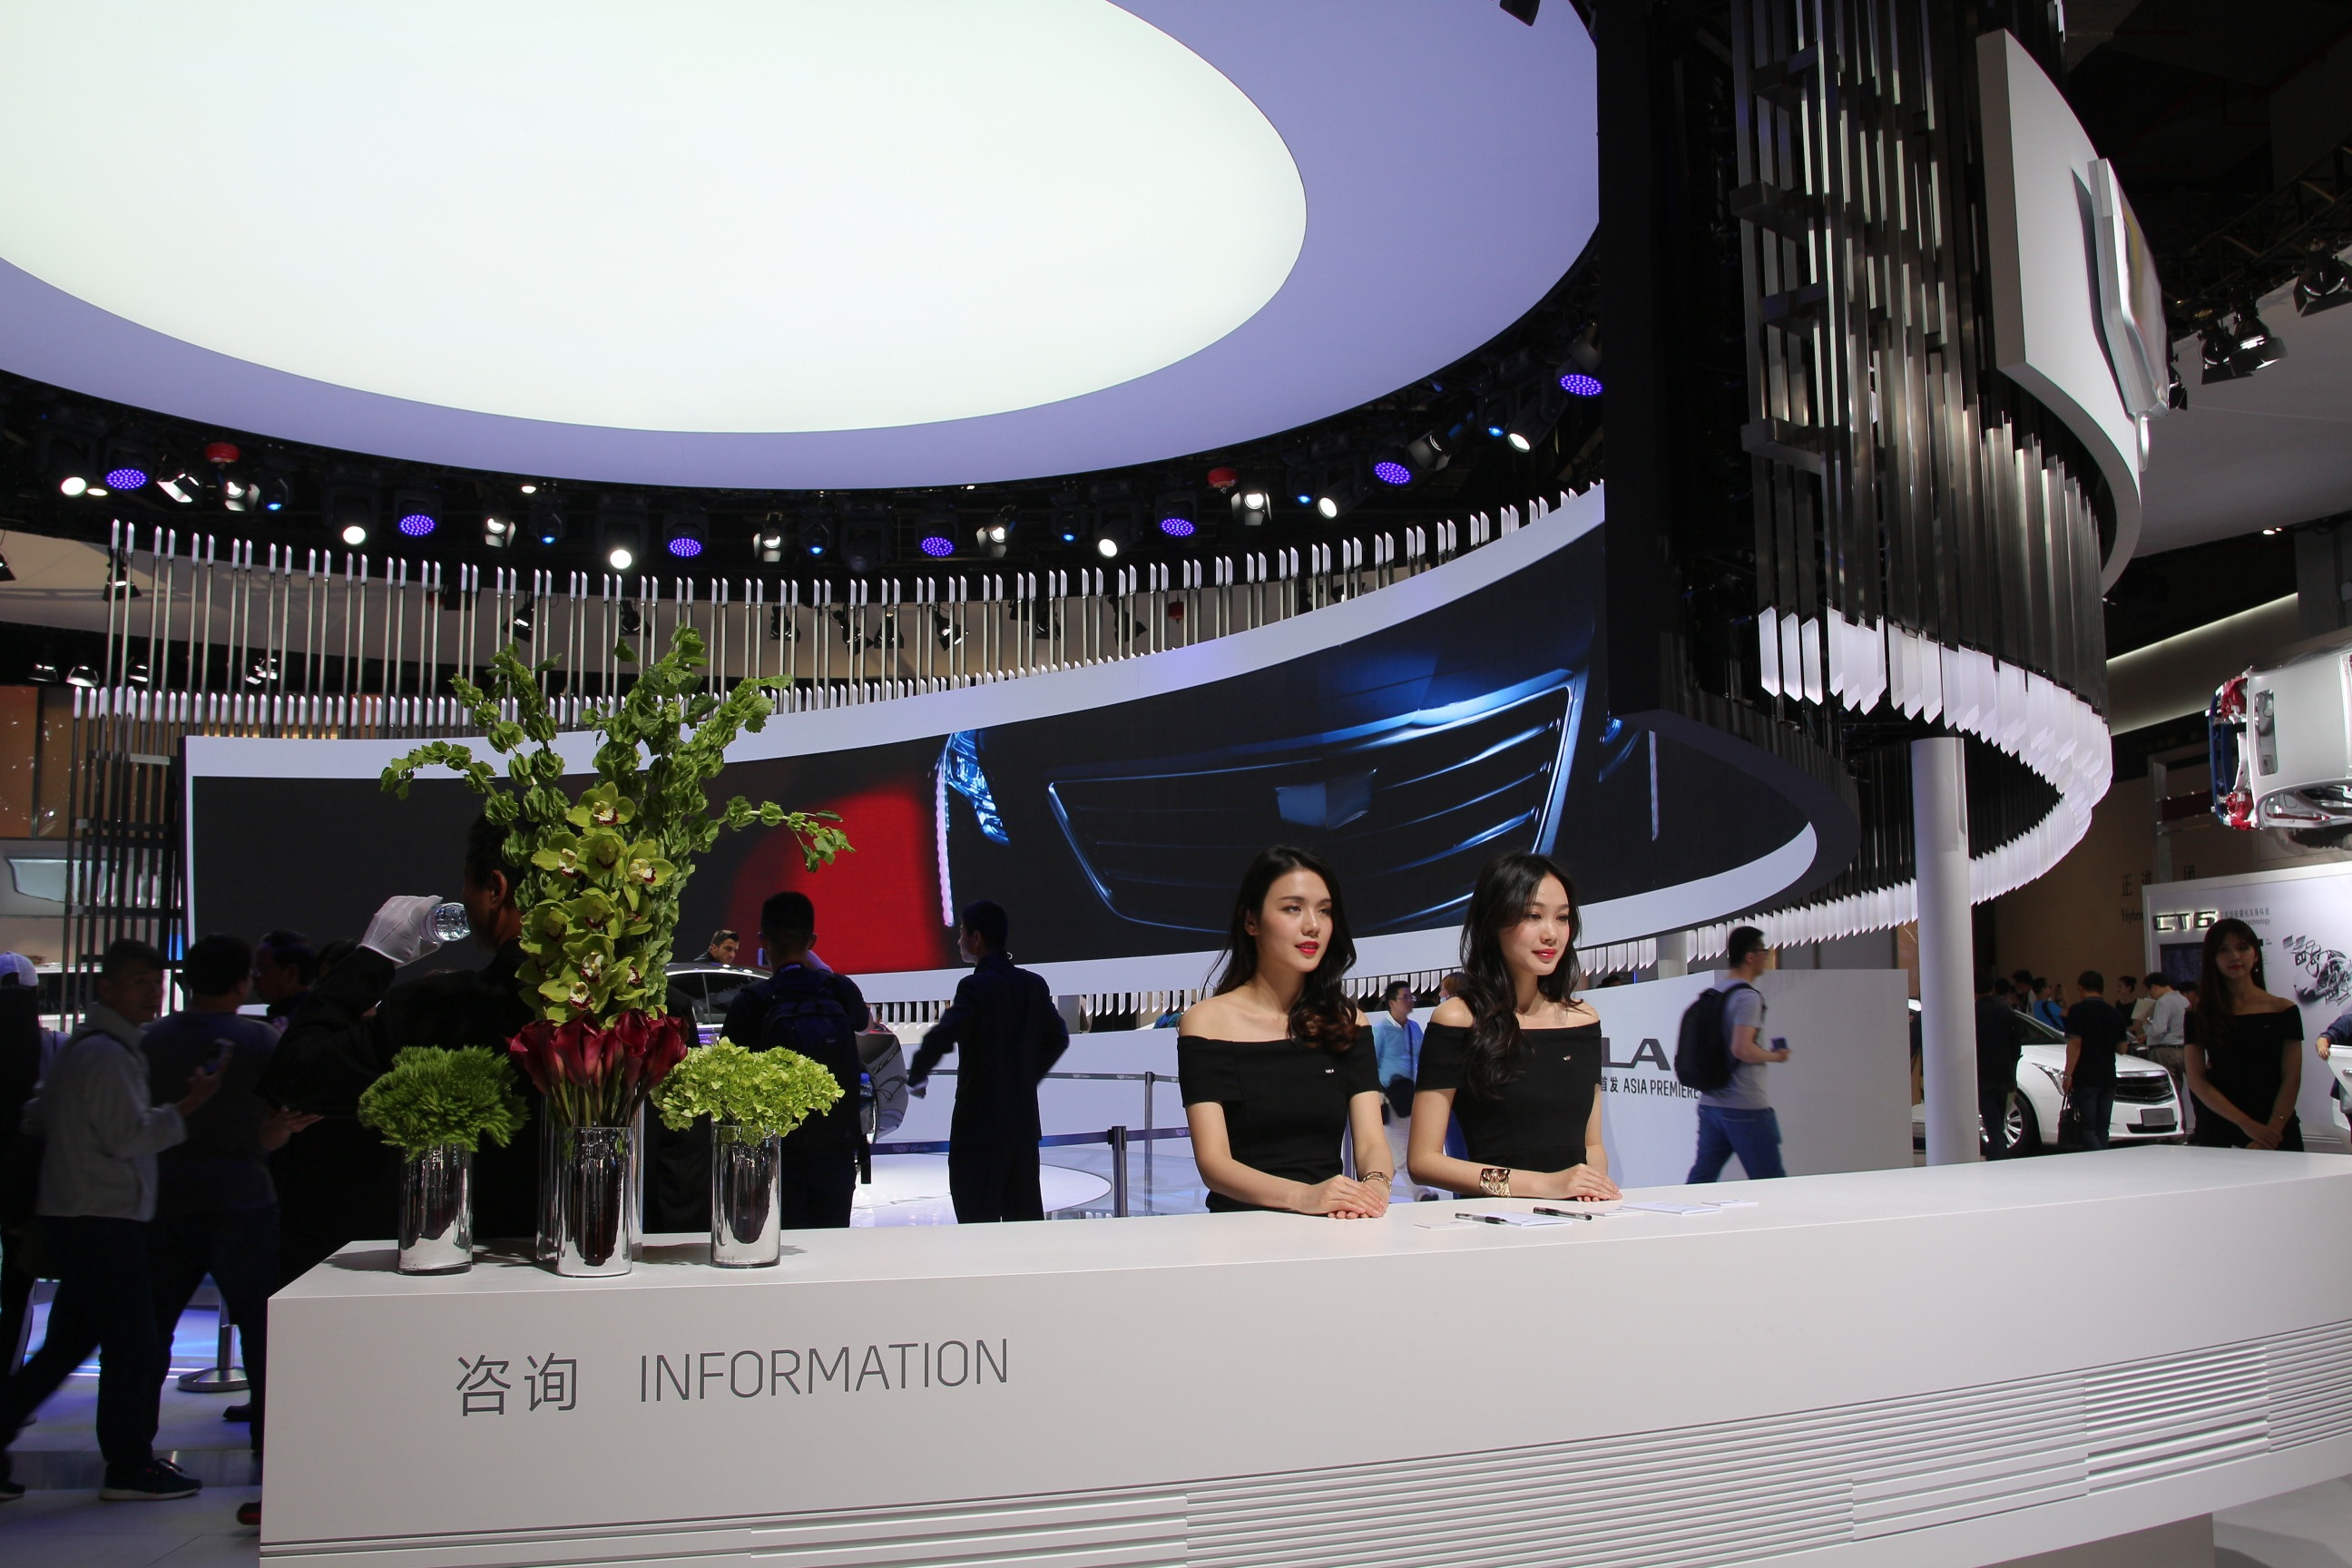 Information Centre of Auto Show 2019 in Shanghai / Informationszentrum der Auto Show 2019 in Shanghai